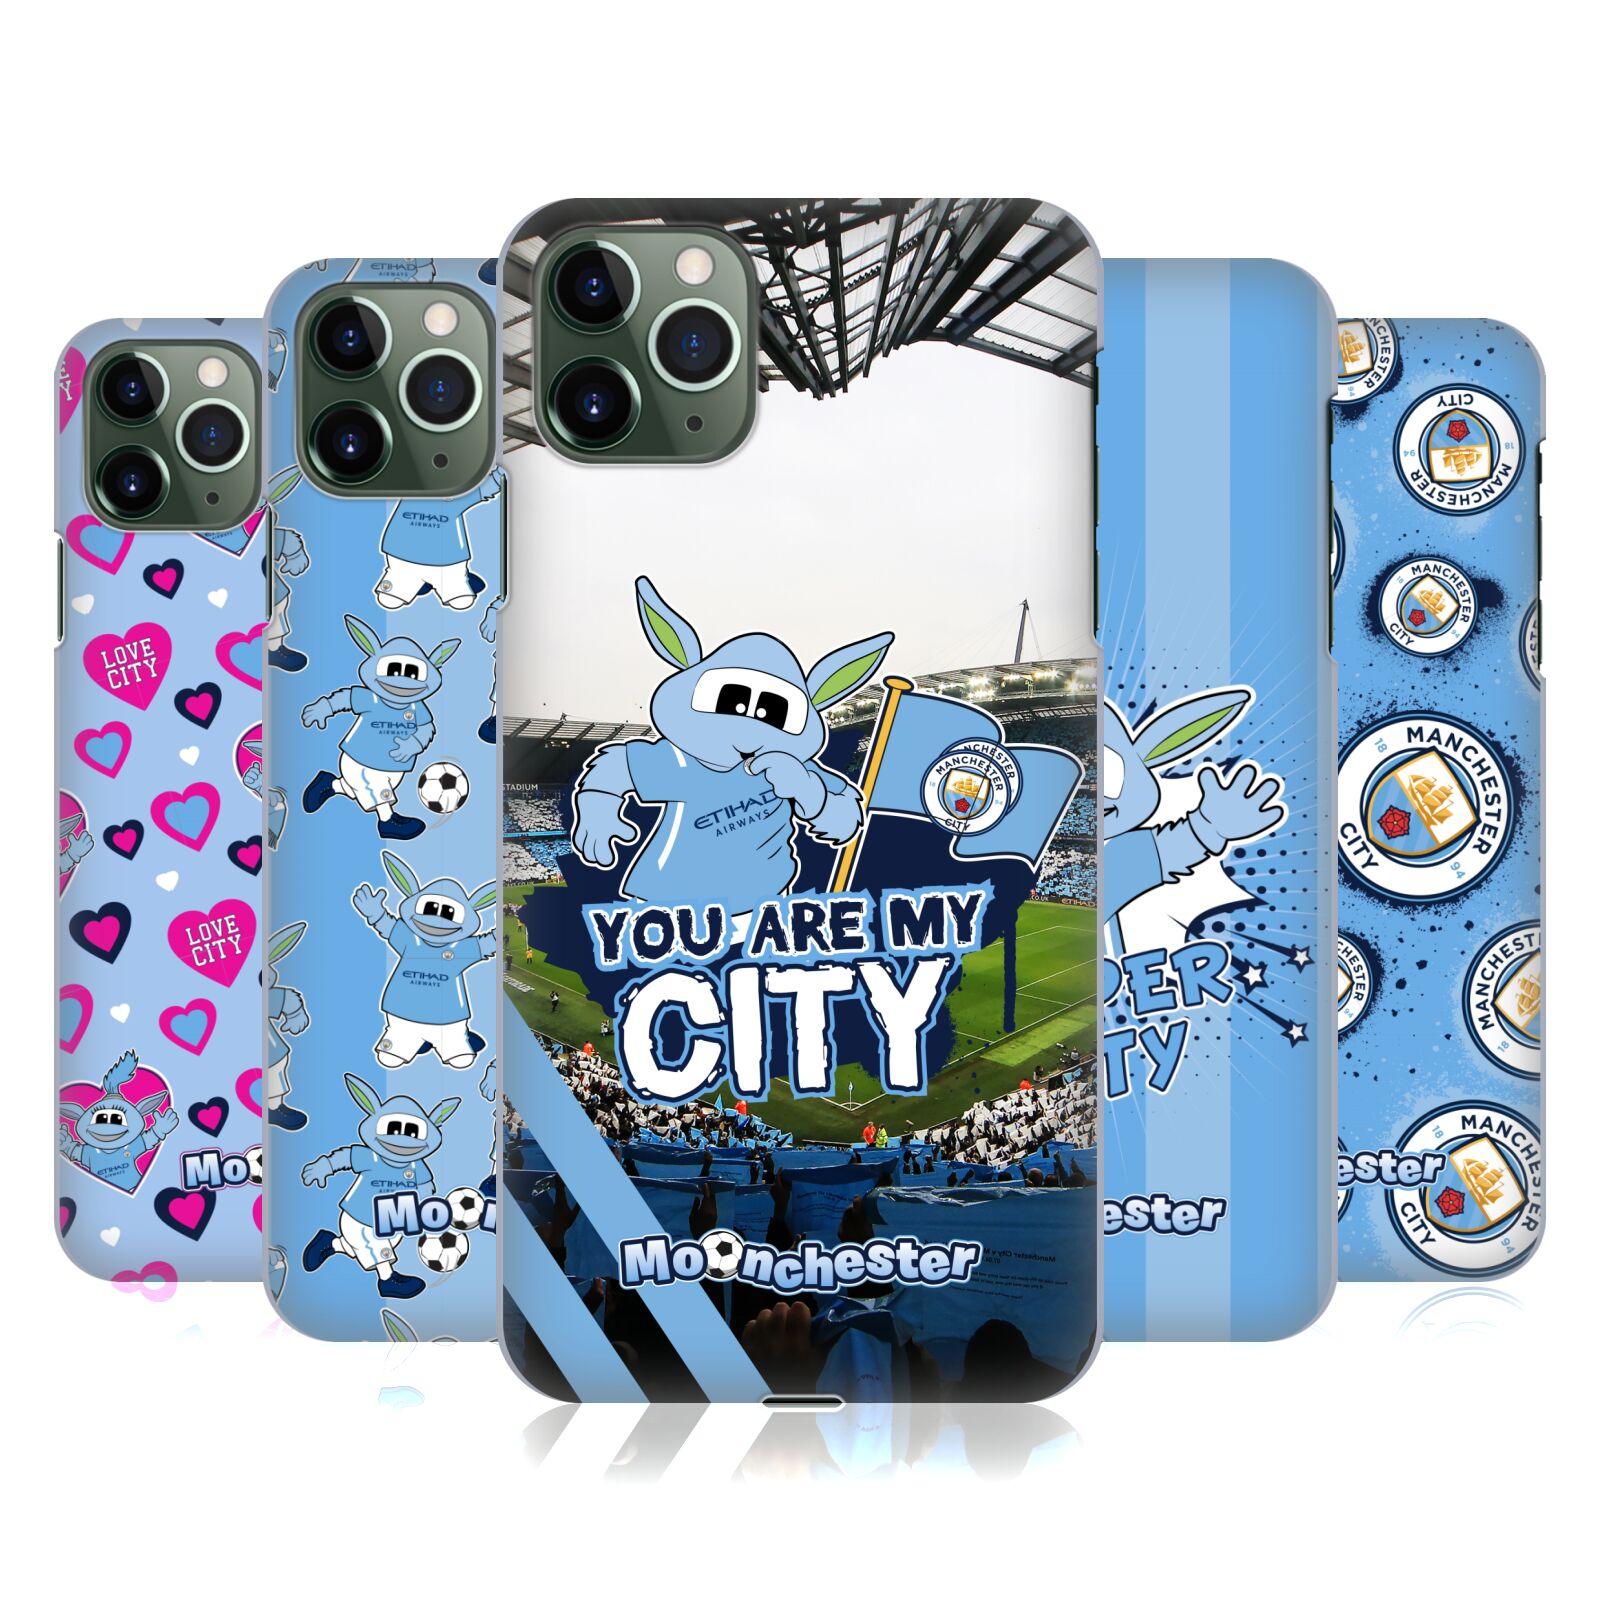 Official Manchester City Man City FC Moonchester & Moonbeam